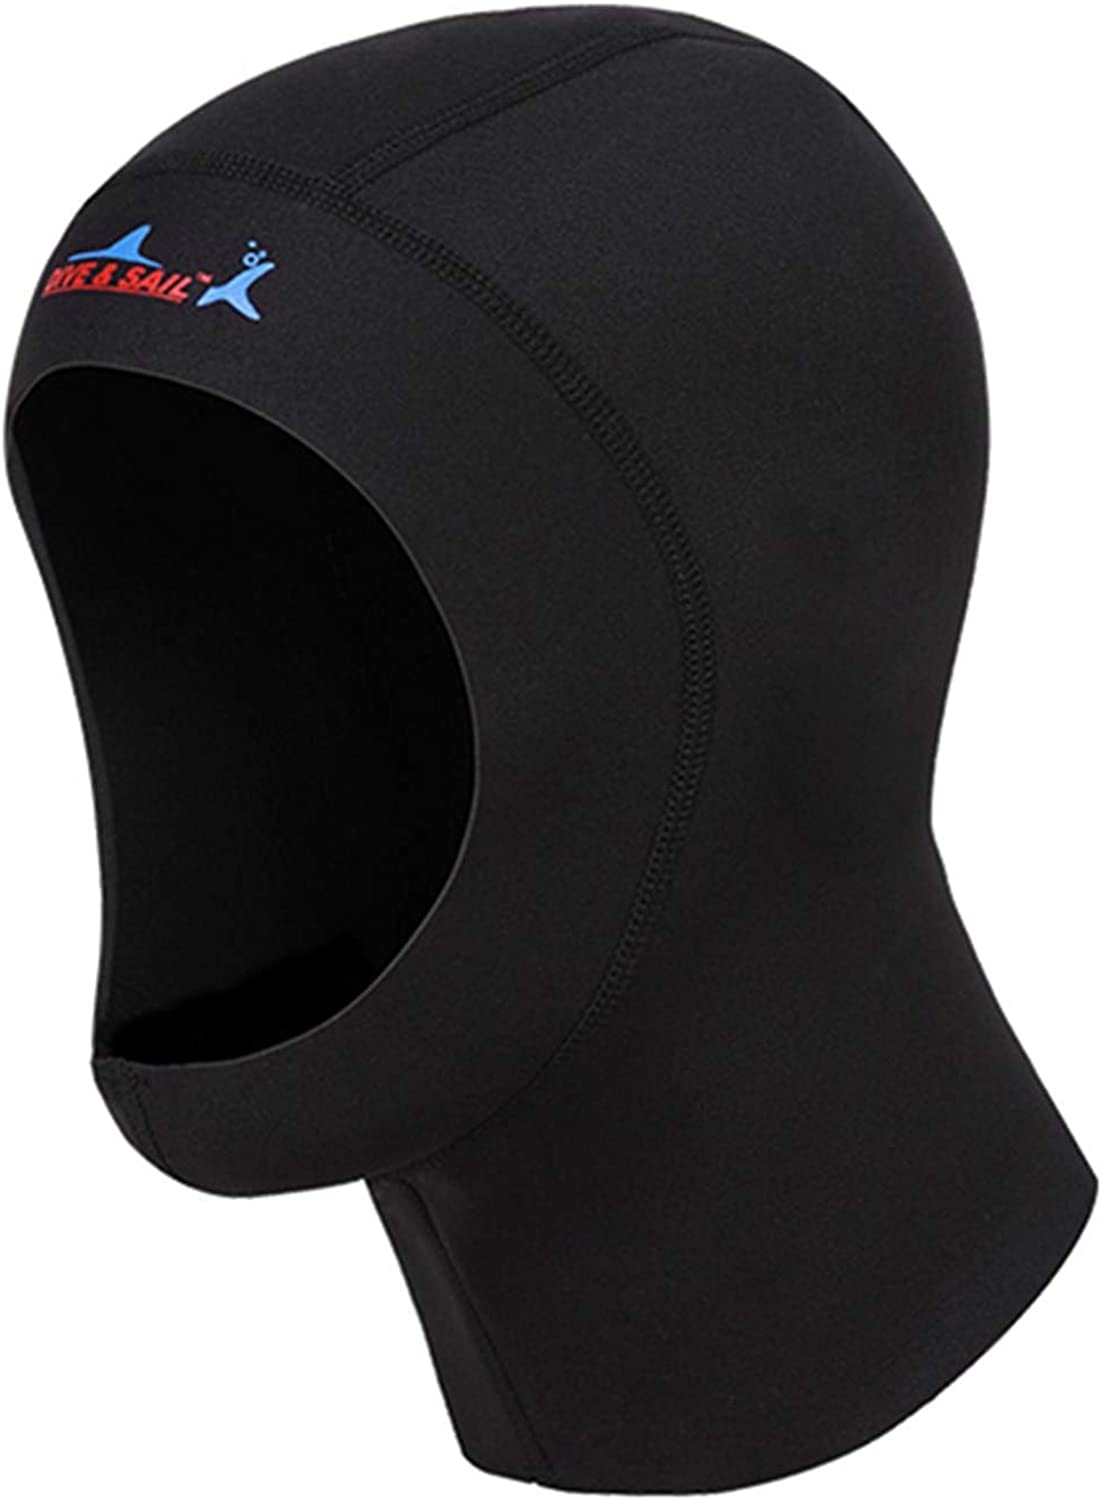 DIVE & SAIL 1mm Full Face Mask Neoprene Diving Hood for Men & Women Water Sports